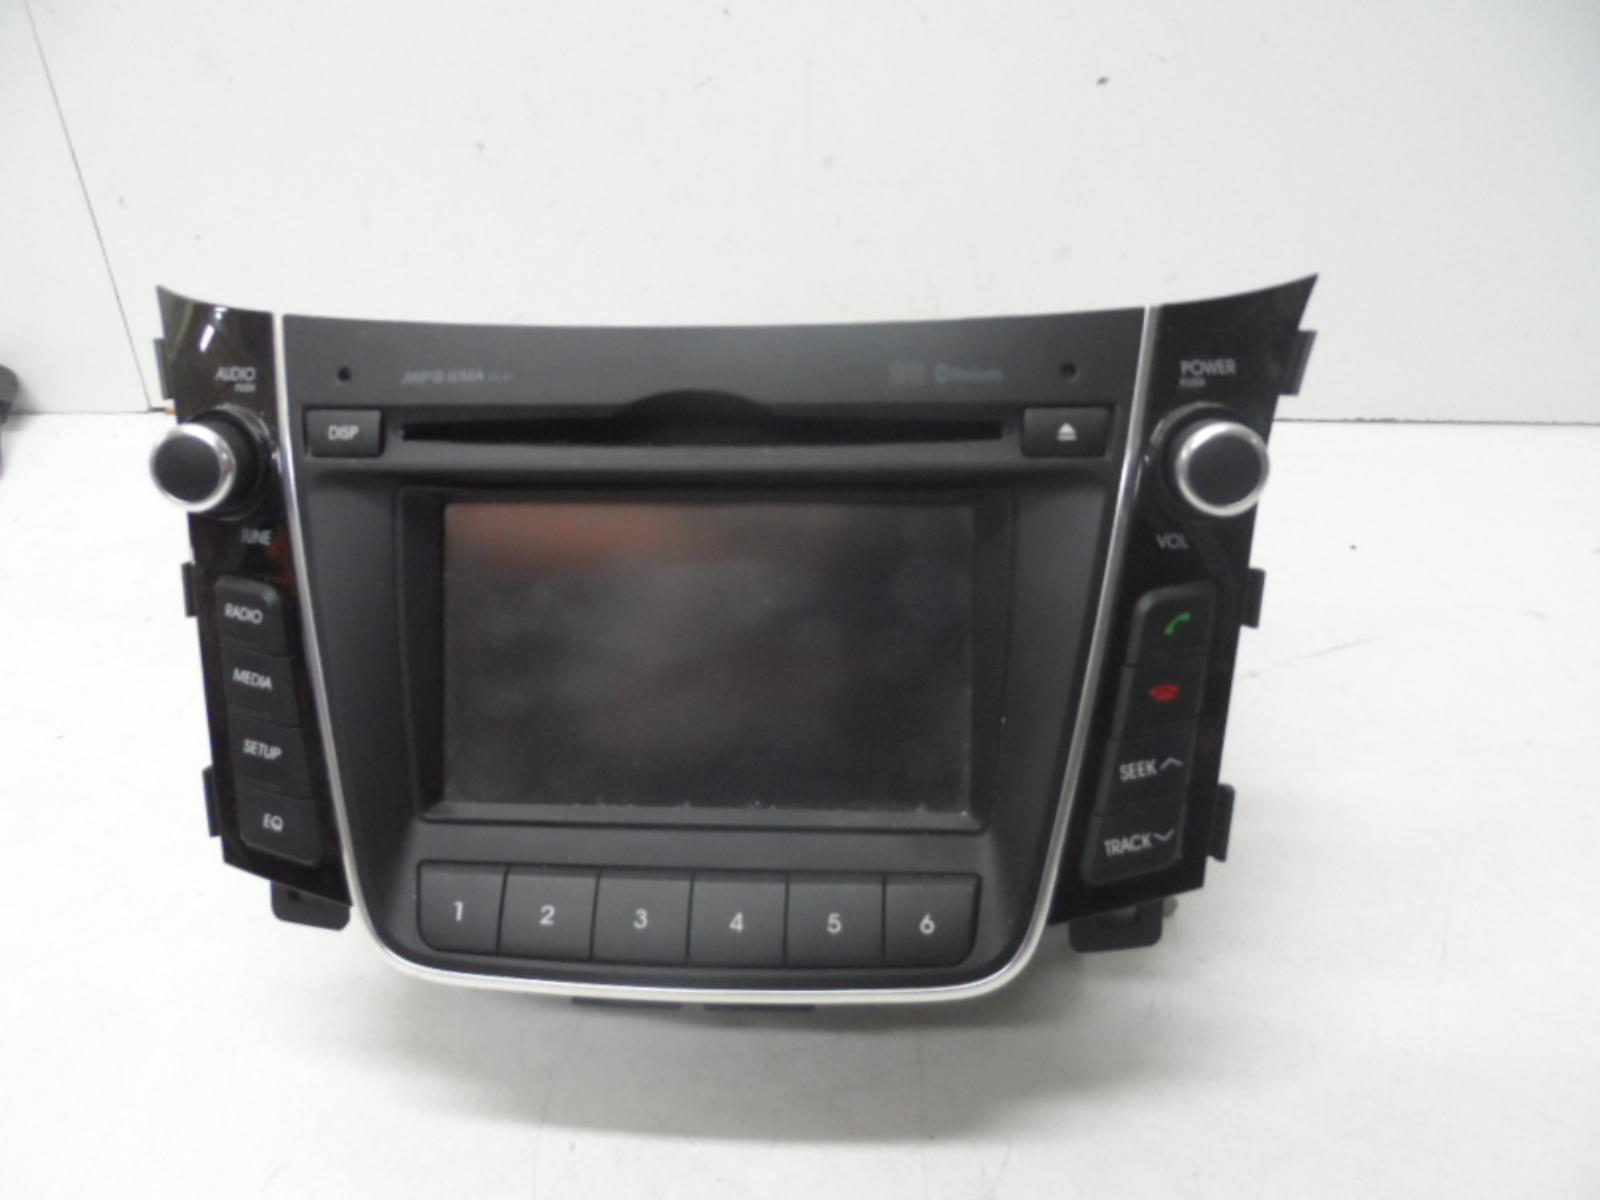 hyundai i30 radio cd player bluetooth type gd 05 12 12. Black Bedroom Furniture Sets. Home Design Ideas